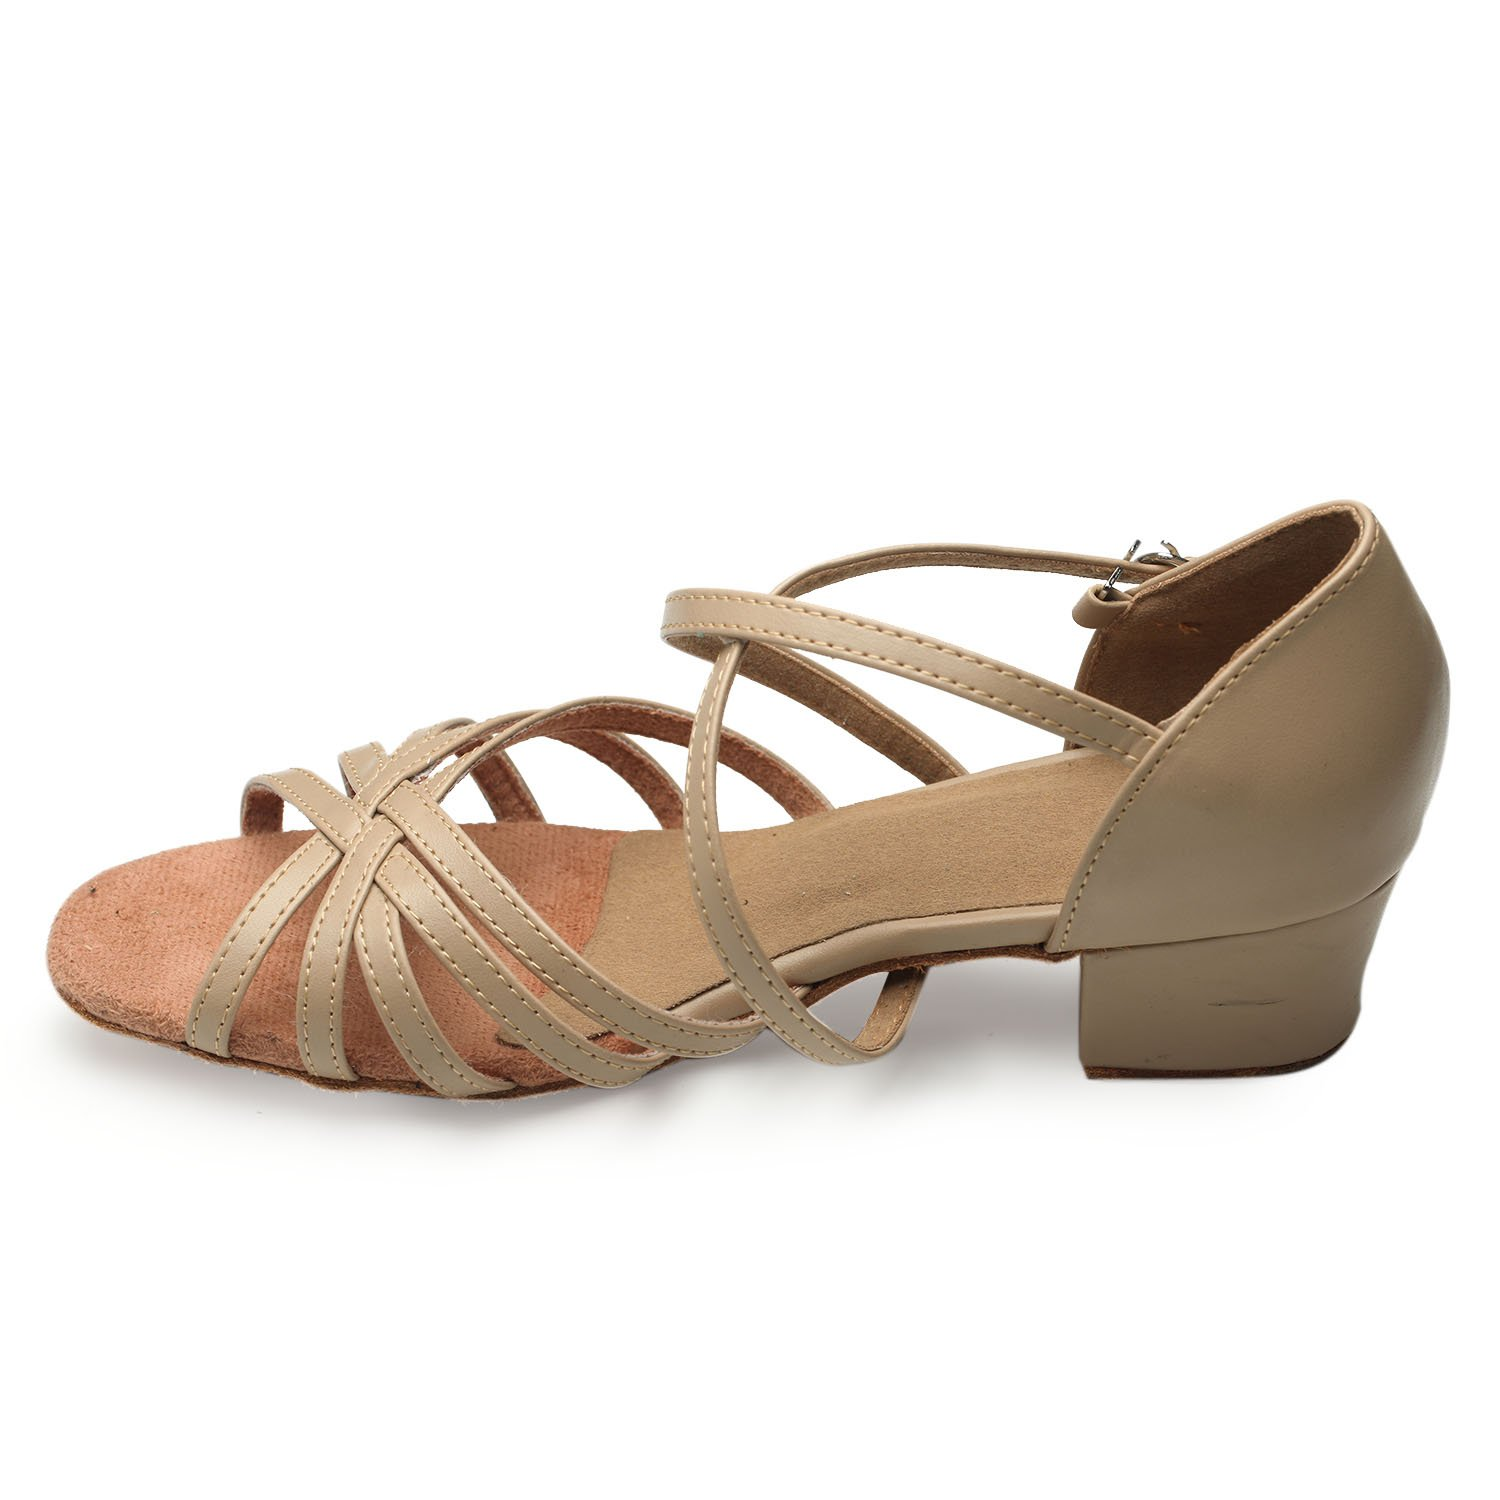 LOVELY BEAUTY for Lady's Ballroom Dance Shoes for BEAUTY Chacha Latin Salsa Rumba Practice B01LW5BFGU 7.5 B(M) US|Skin Color 5ff2f1